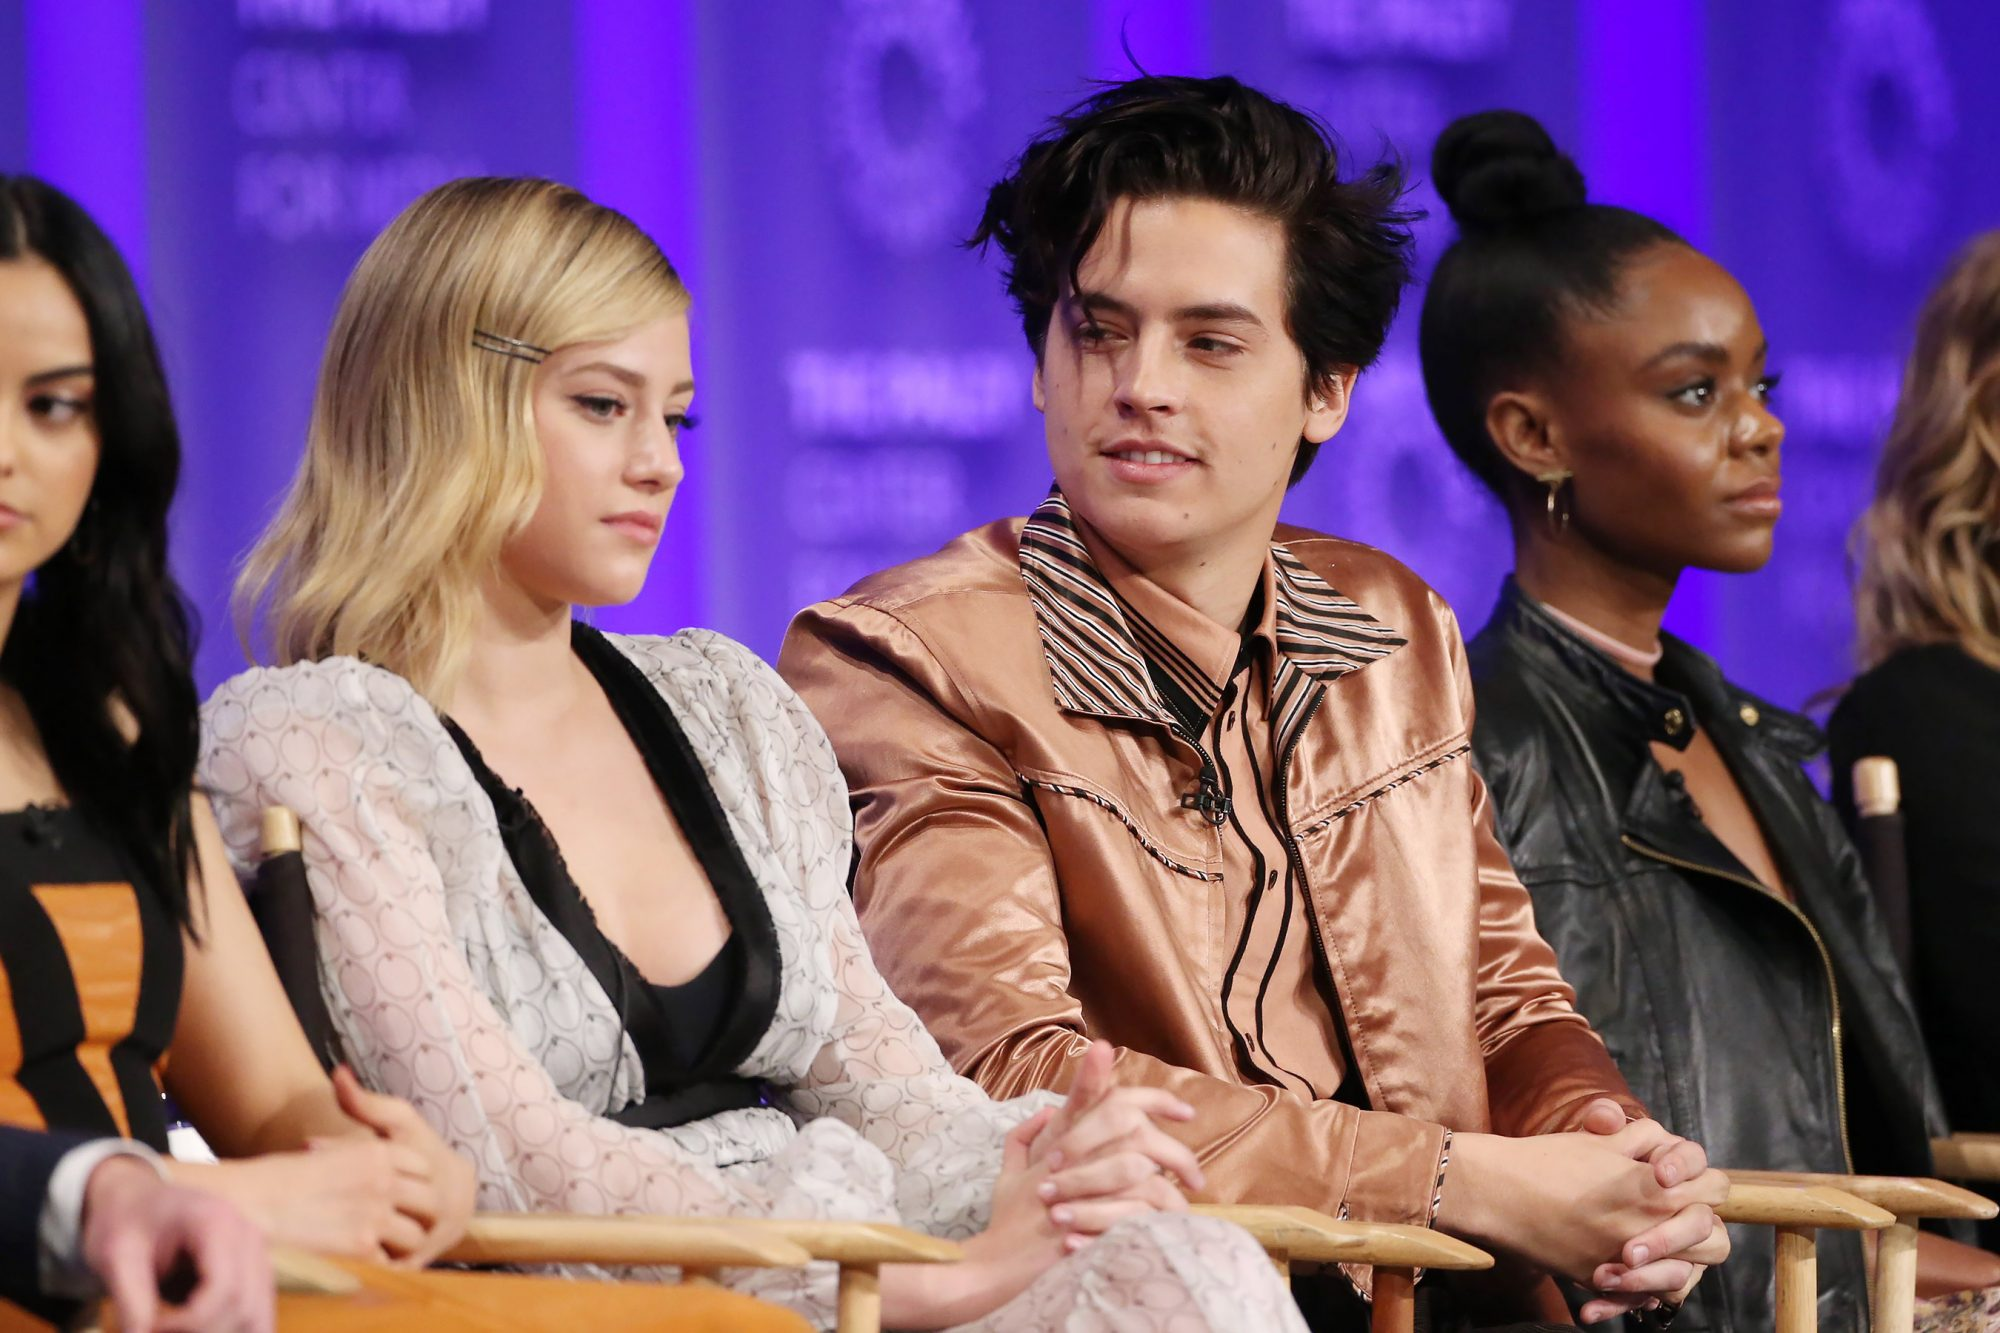 'Riverdale' TV show presentation, Panel, Paleyfest, Los Angeles, USA - 25 Mar 2018